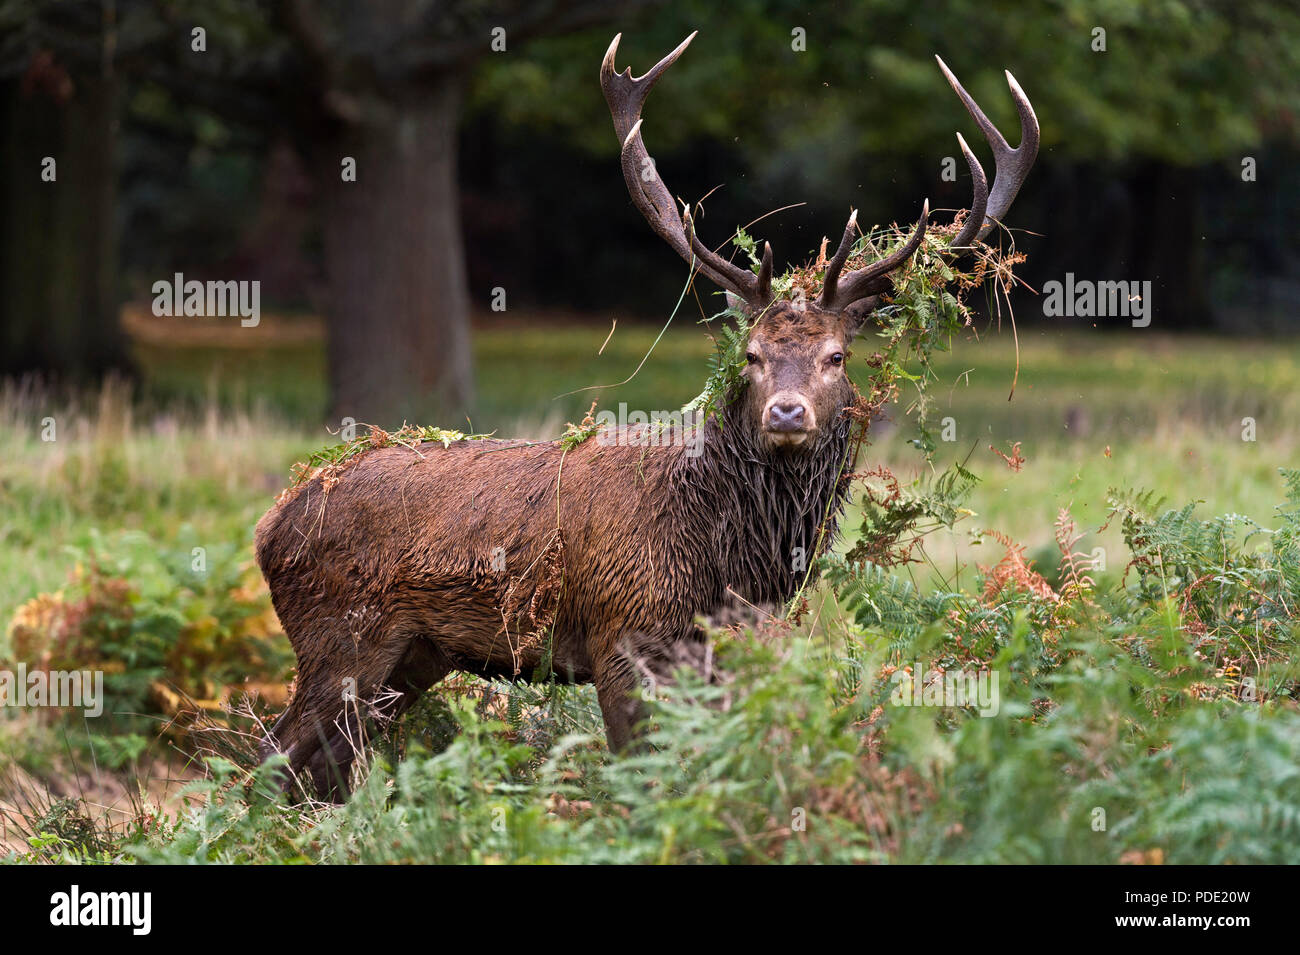 Red Deer Stag Richmond Park UK - Stock Image